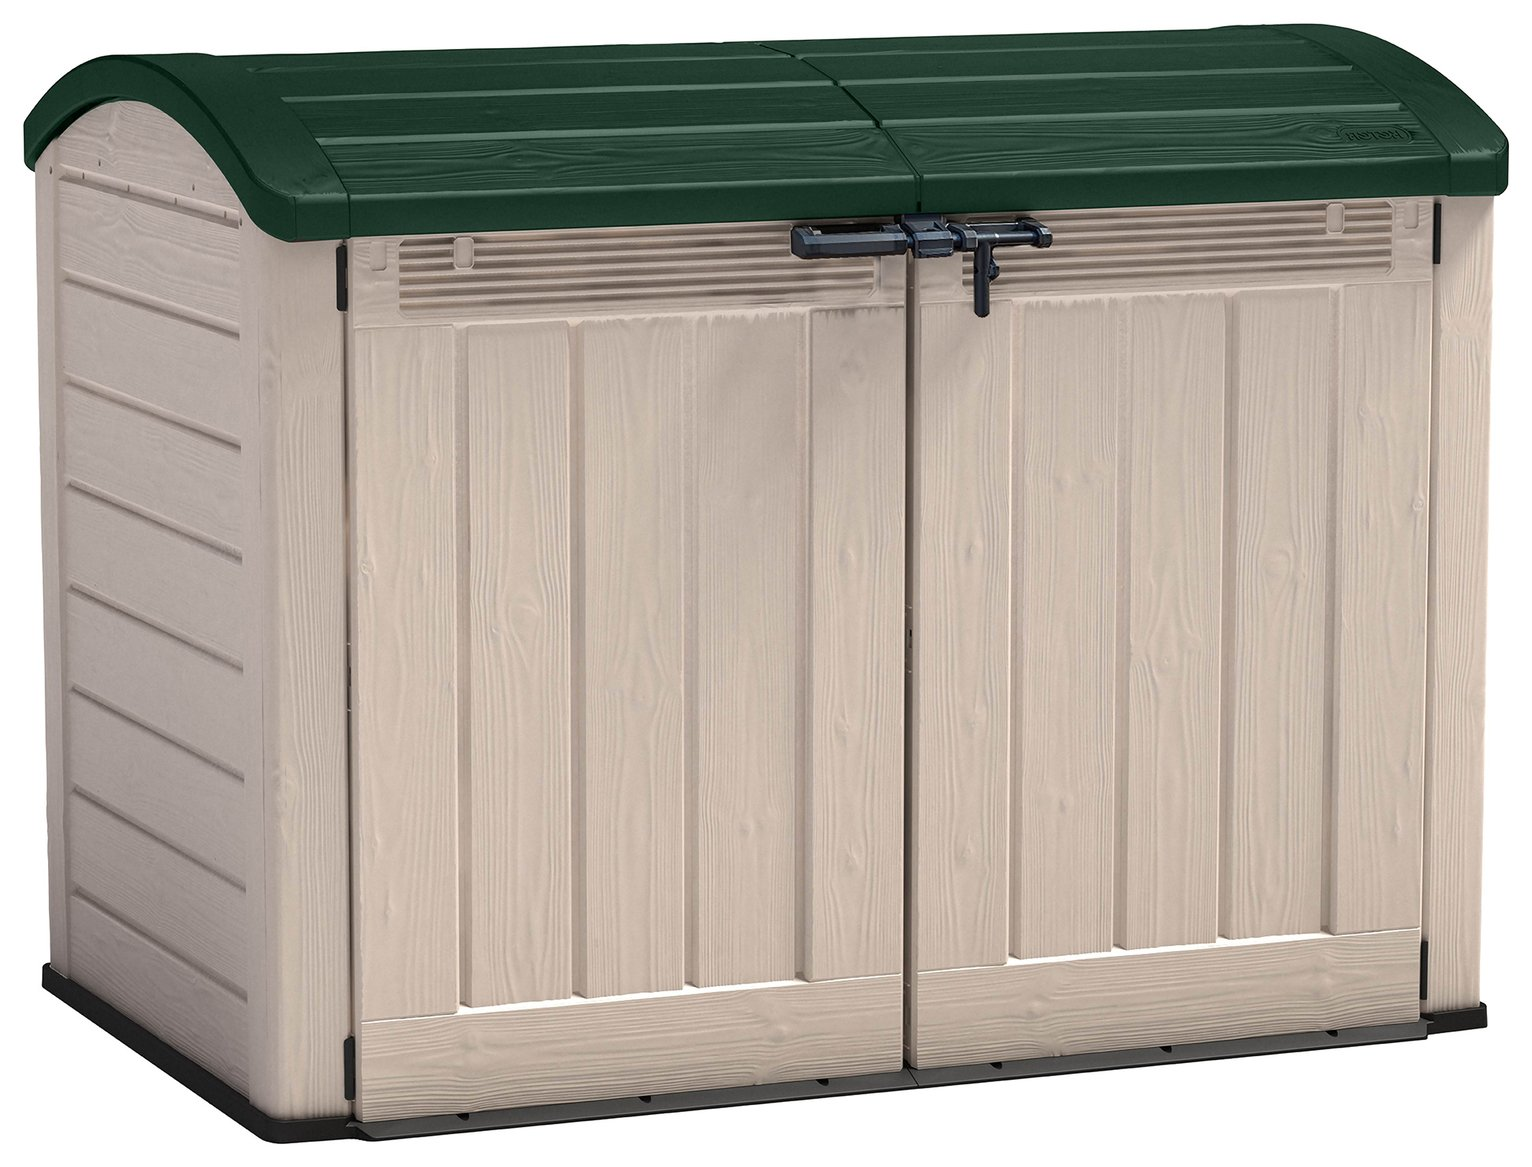 Buy Keter Store It Out Ultra Garden and Bike Store - Beige/Green   Garden storage boxes and cupboards   Argos  sc 1 st  Argos & Buy Keter Store It Out Ultra Garden and Bike Store - Beige/Green ...